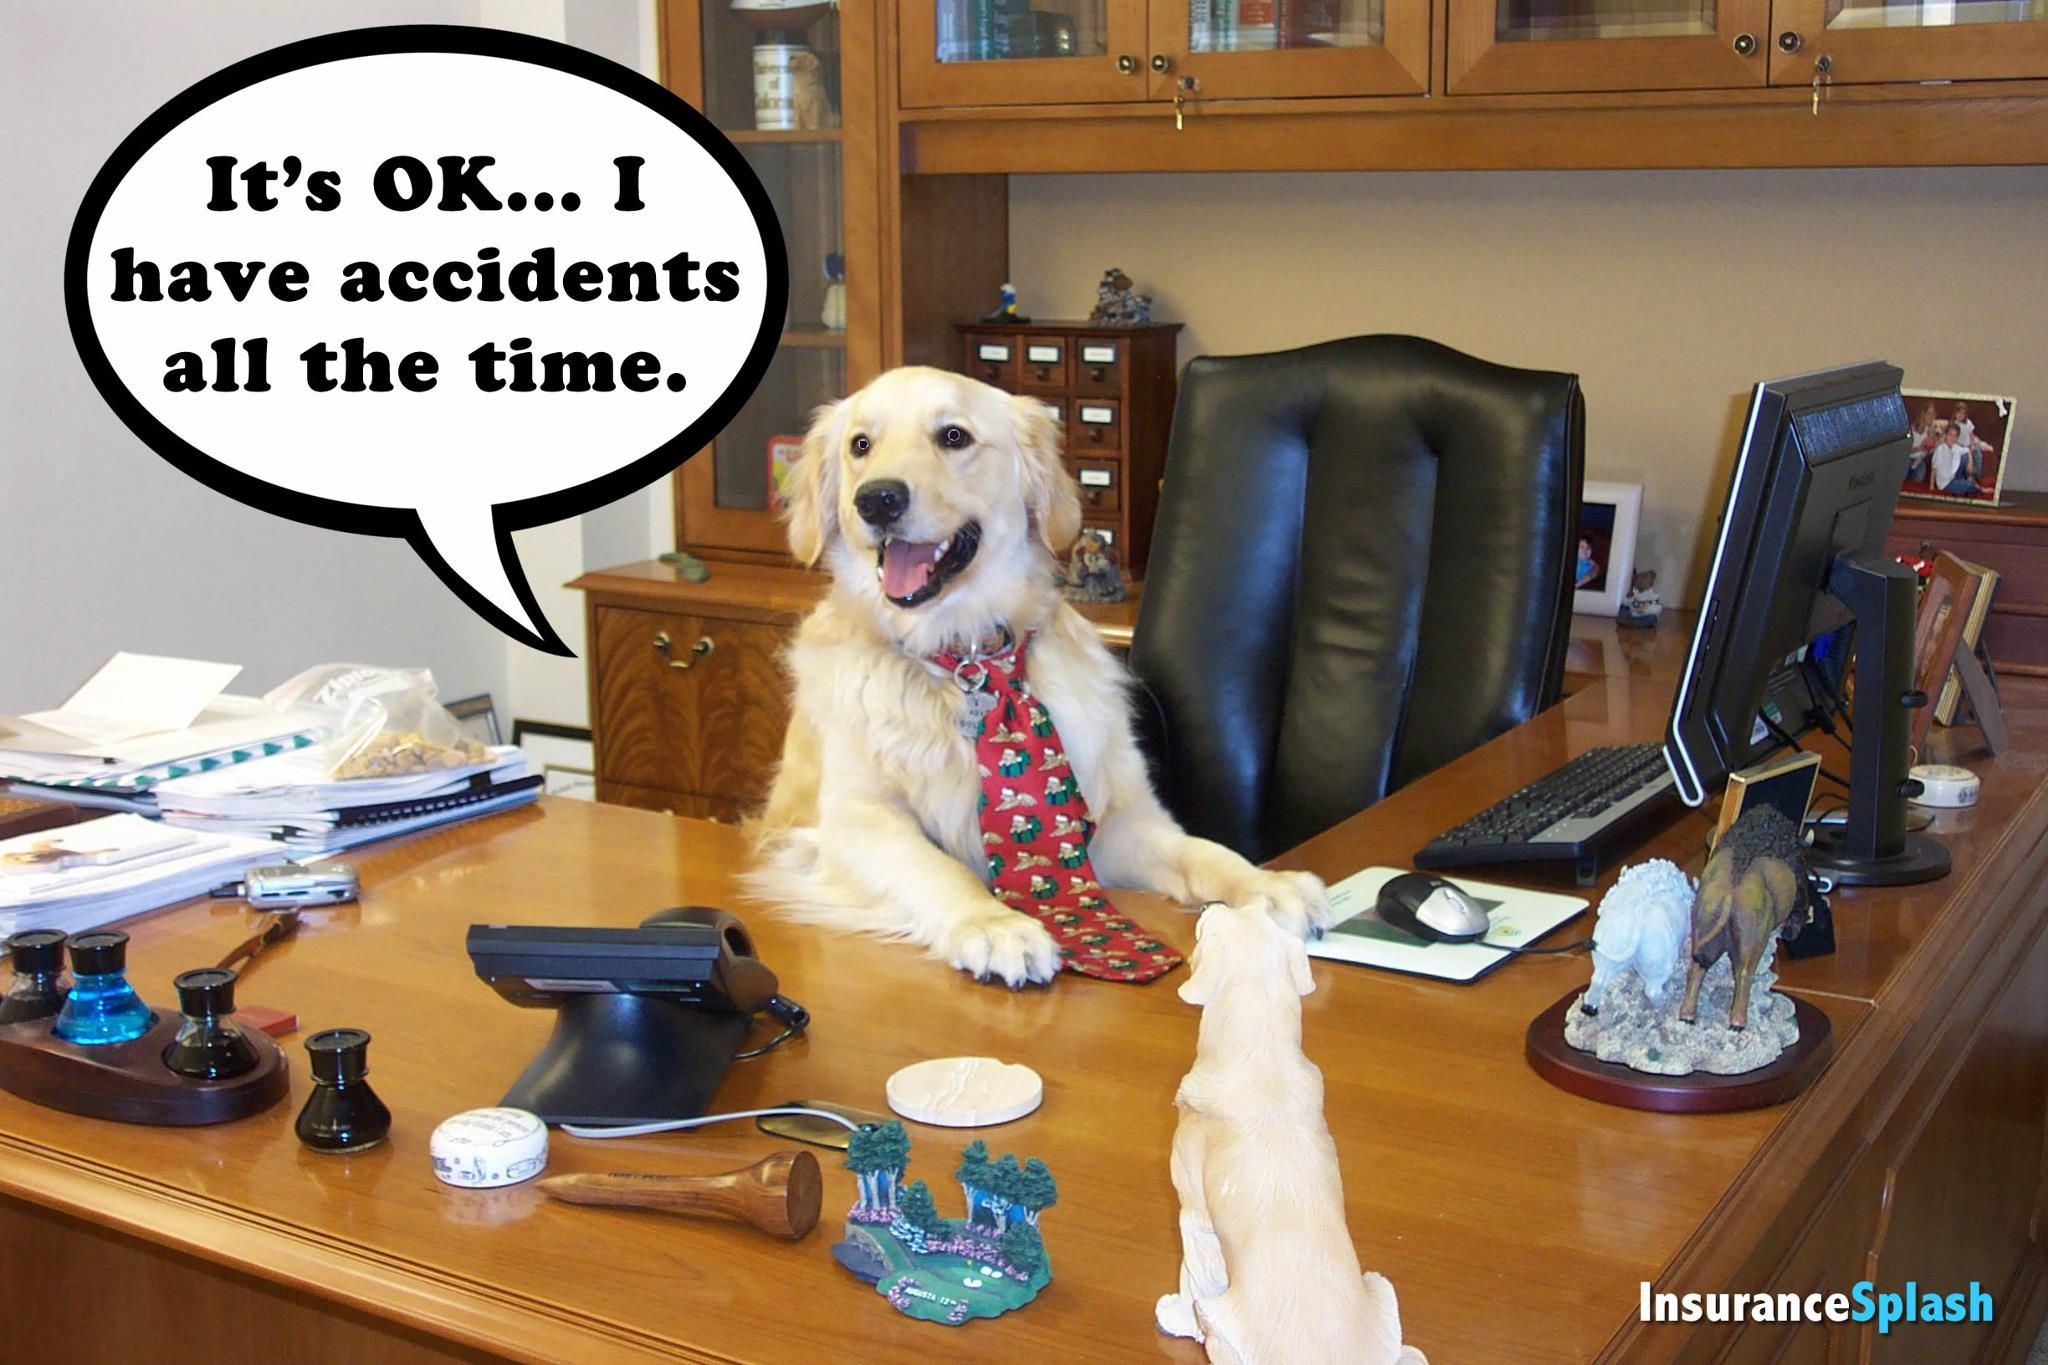 Insurance agents are human too and we may have claims of